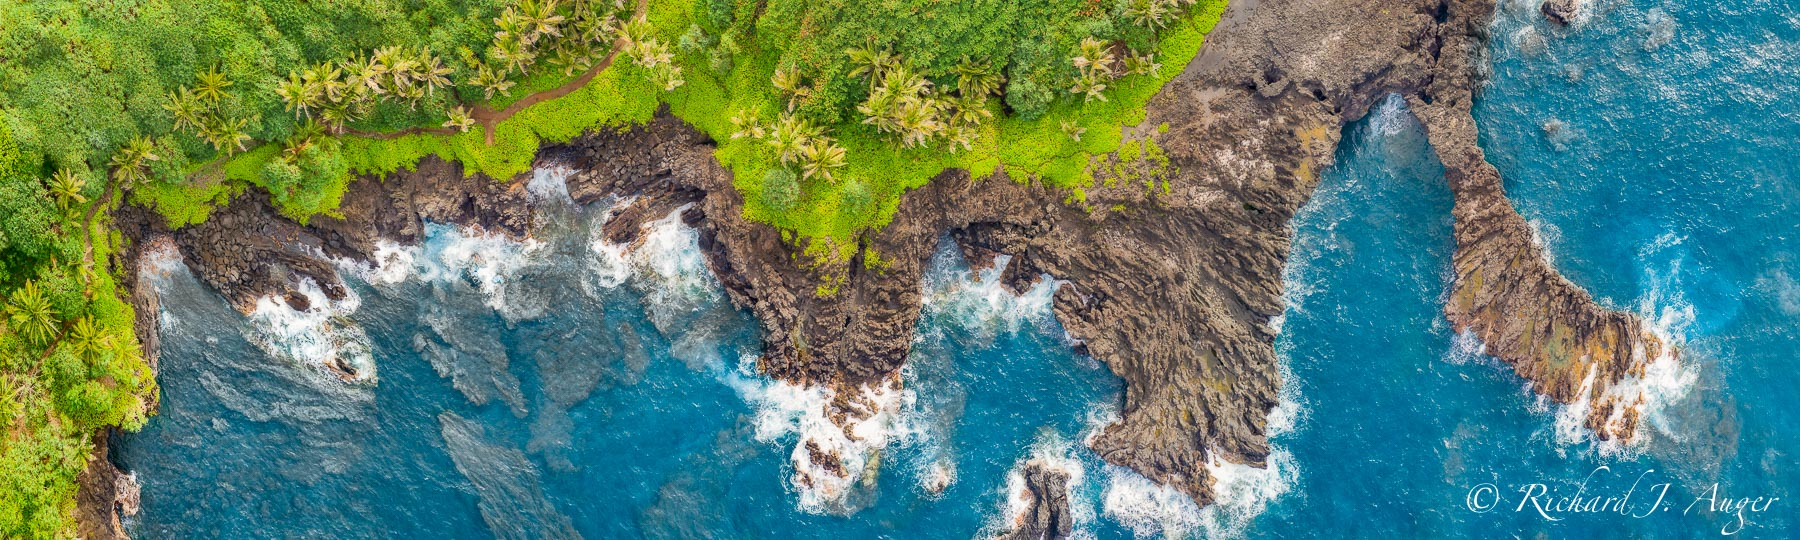 Hana Bay, Hawaii, Maui, Drone, Aerial, Cliffs, Ocean, Water Blue, Waves